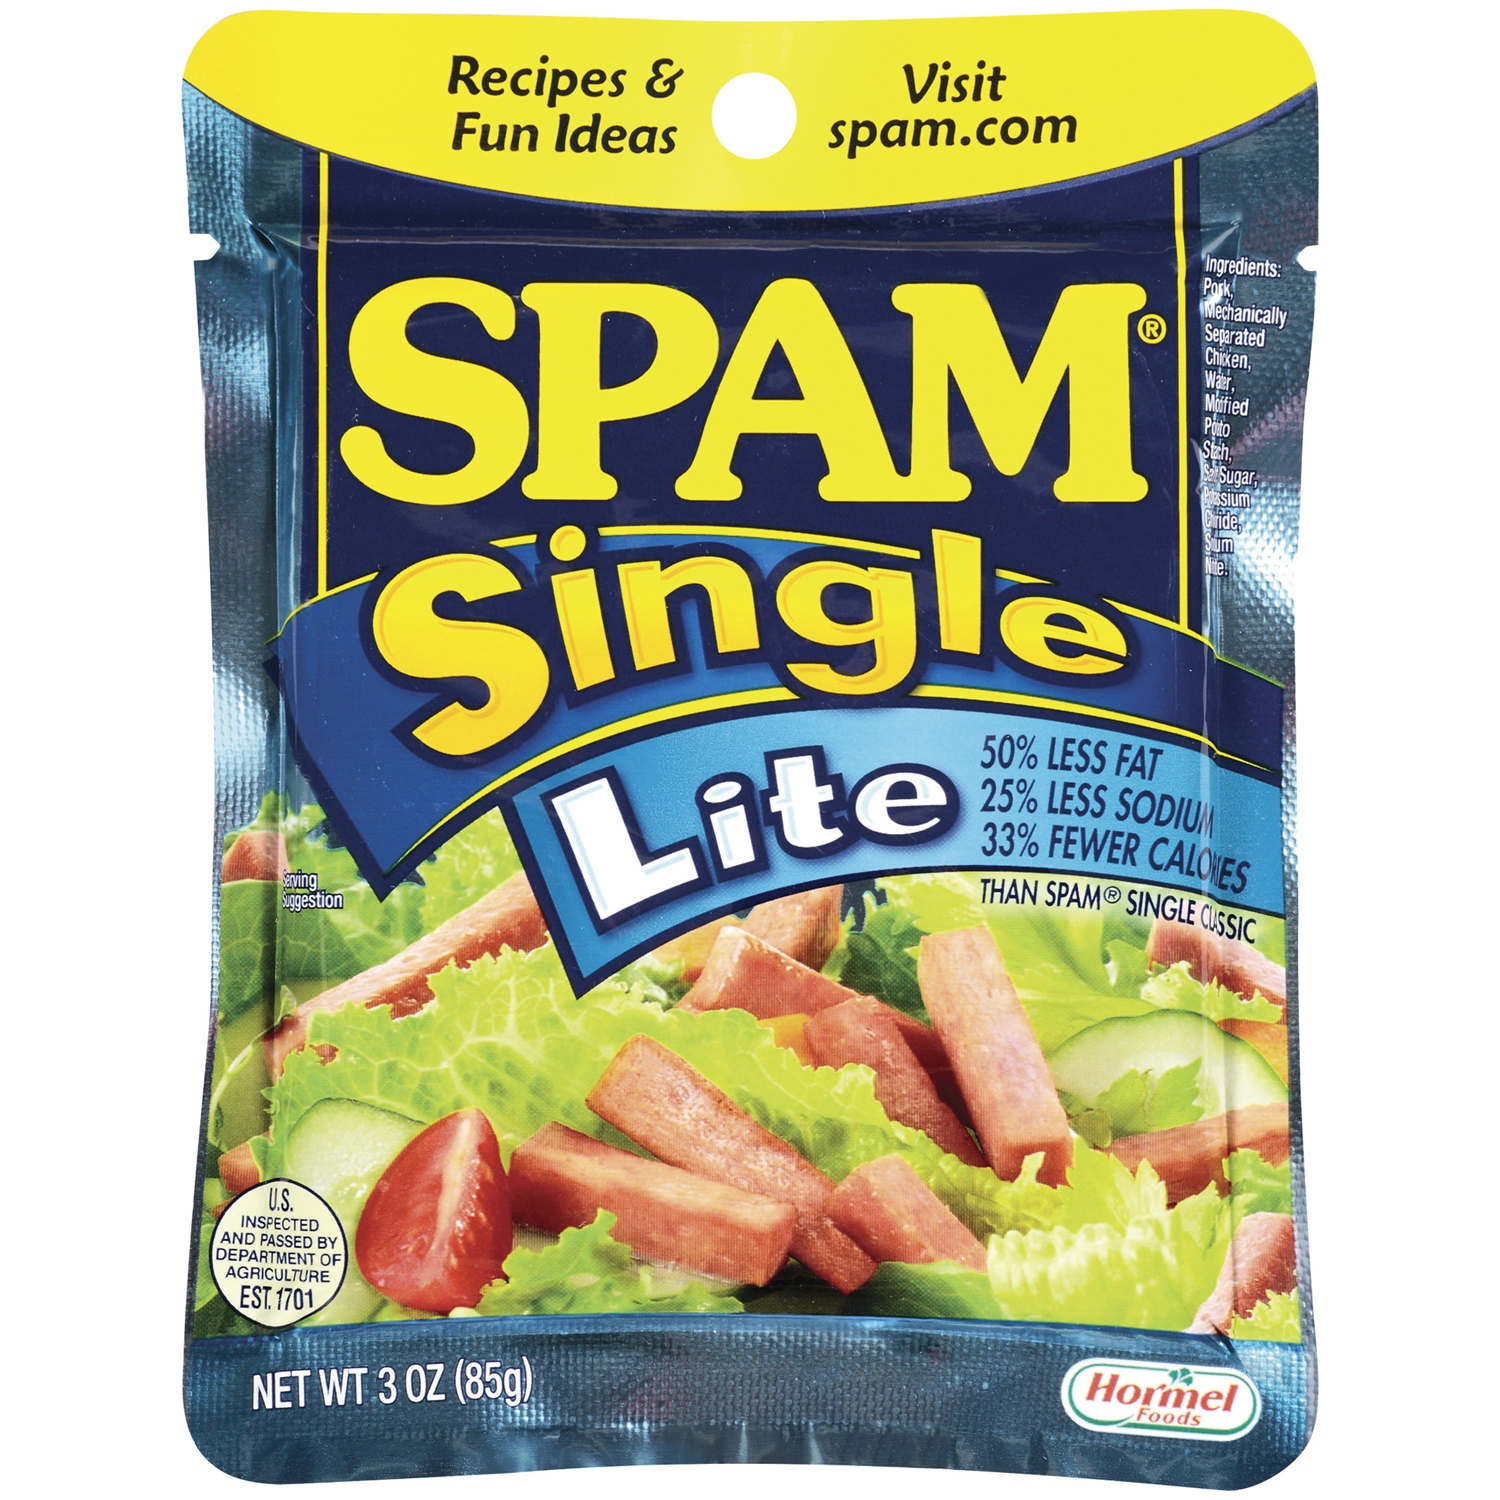 SPAM Single Lite Canned Meat 3 OZ PEG by Hormel Foods Corporation